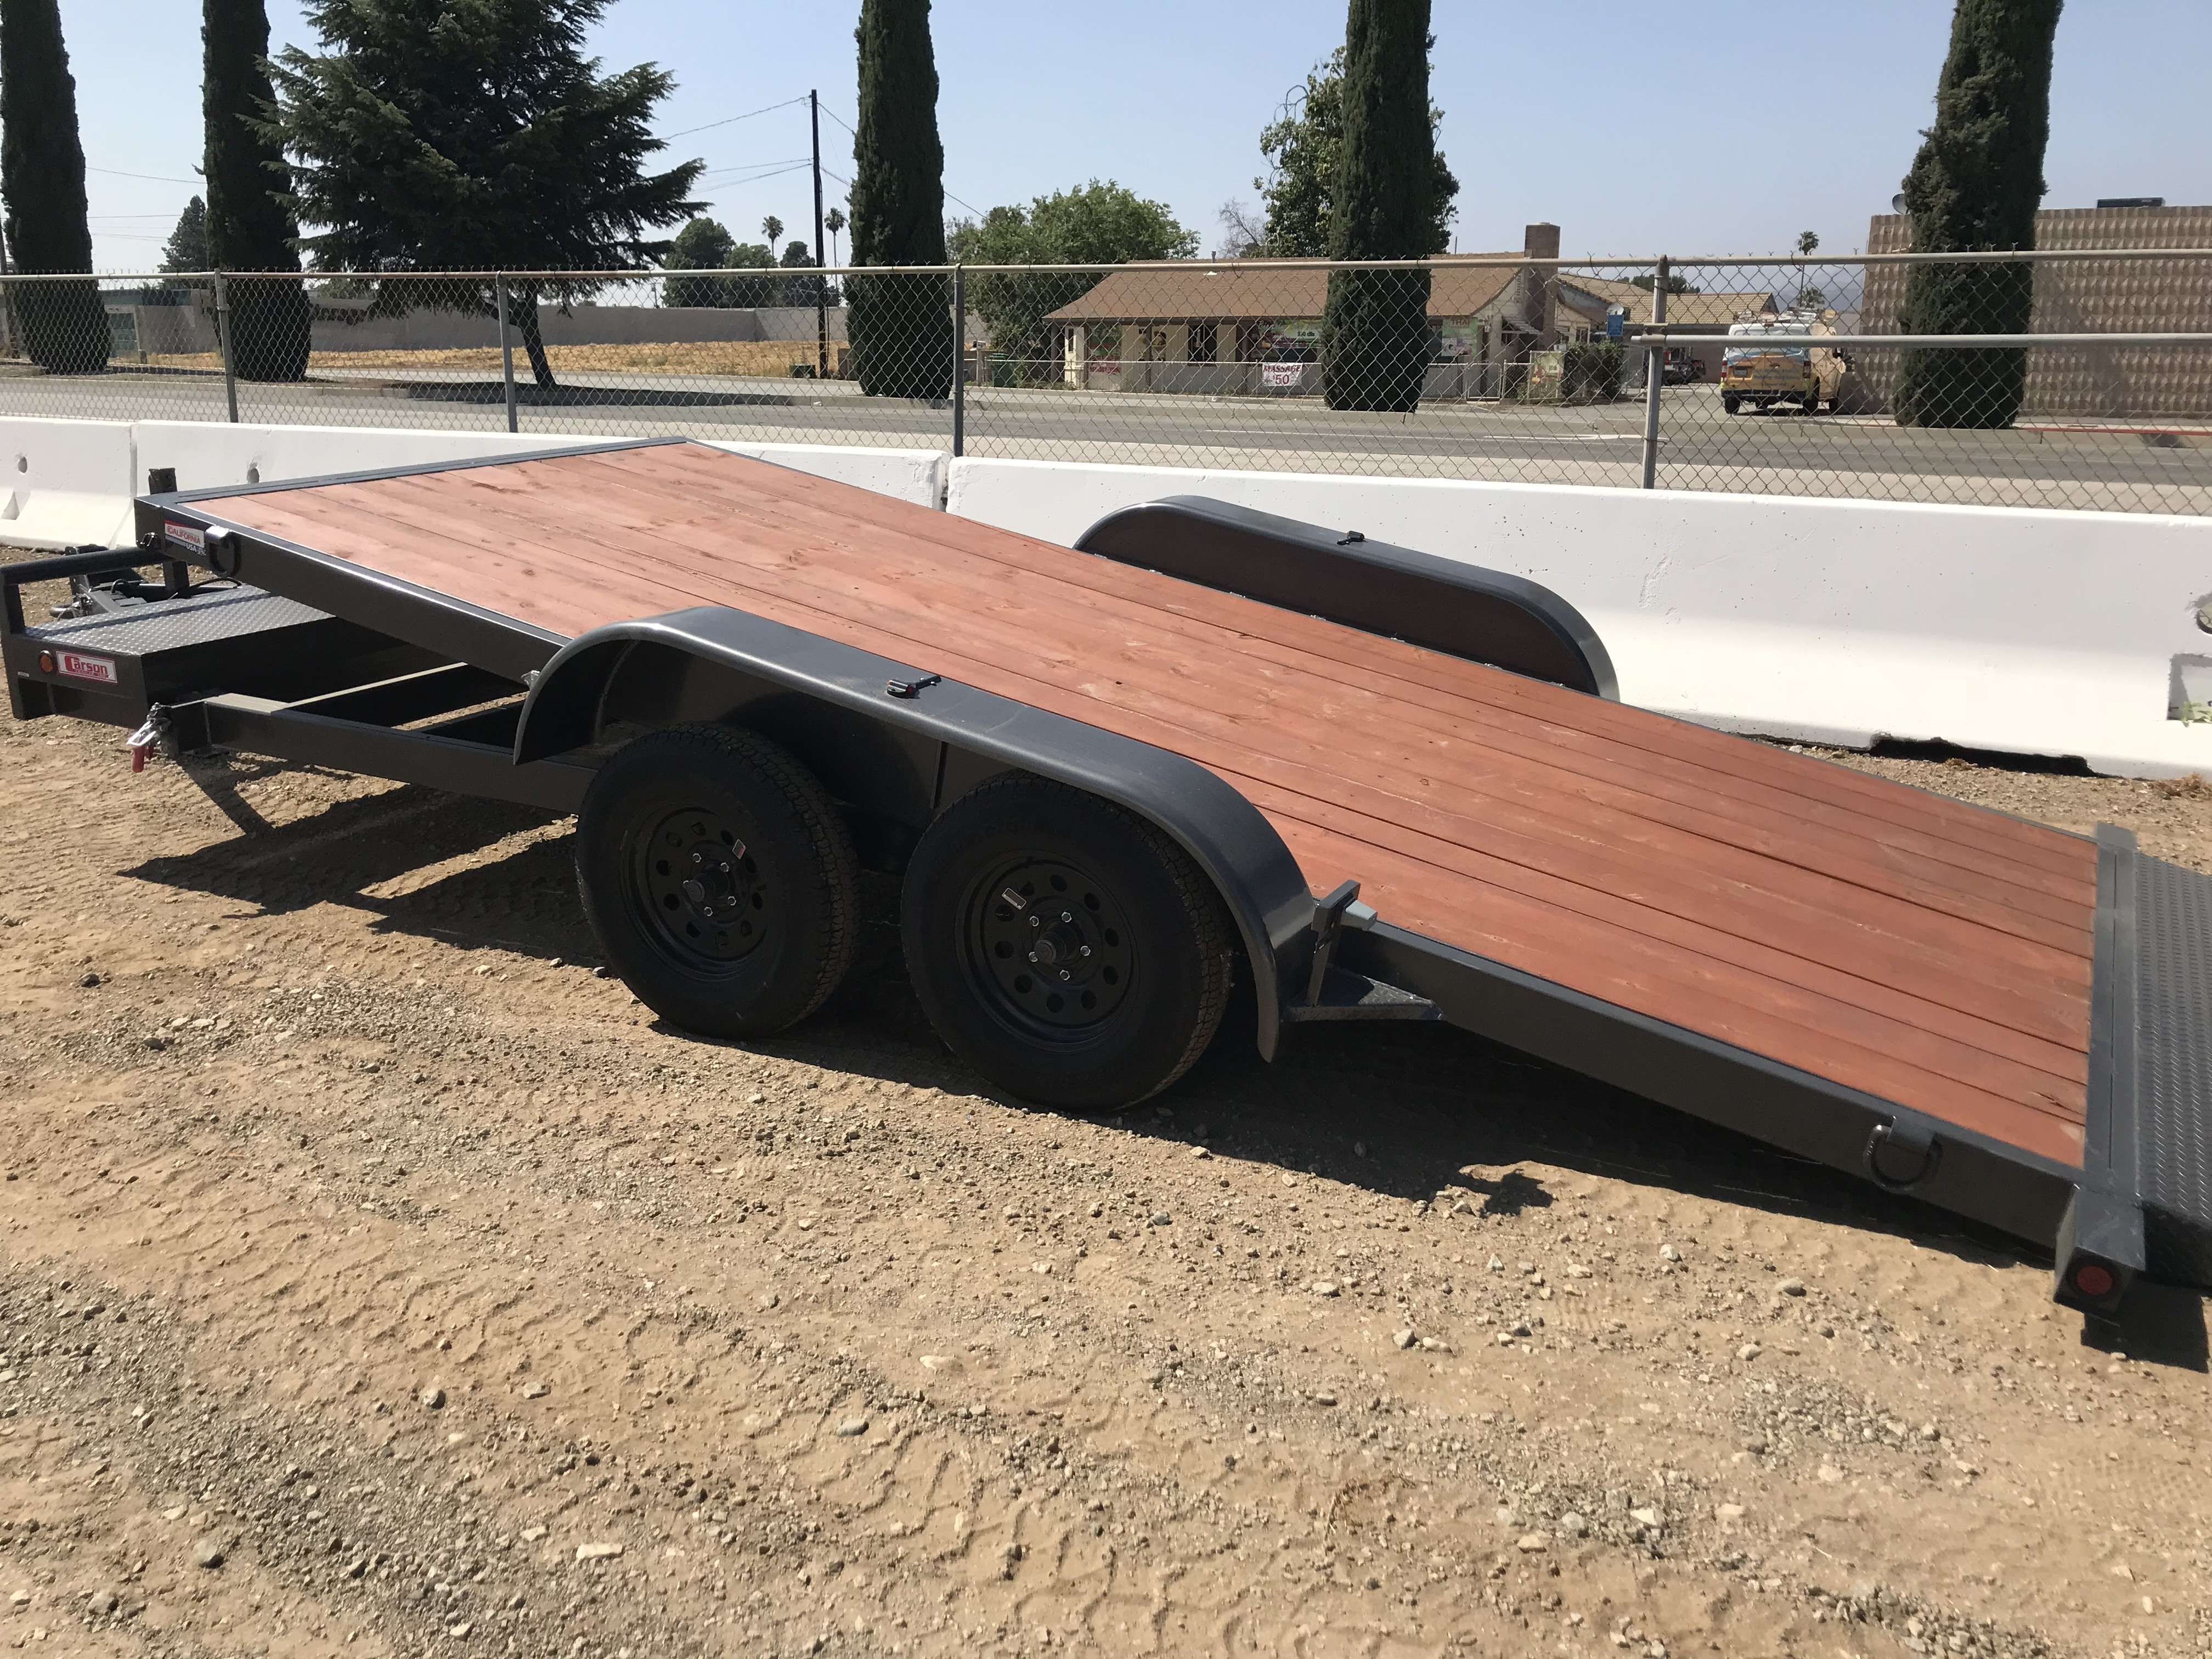 New, 2020, Carson Trailer, Gravity Tilt Deck 18' Utility Trailer with 2-3500lb Axles in Beaumont, CA, Utility Trailers